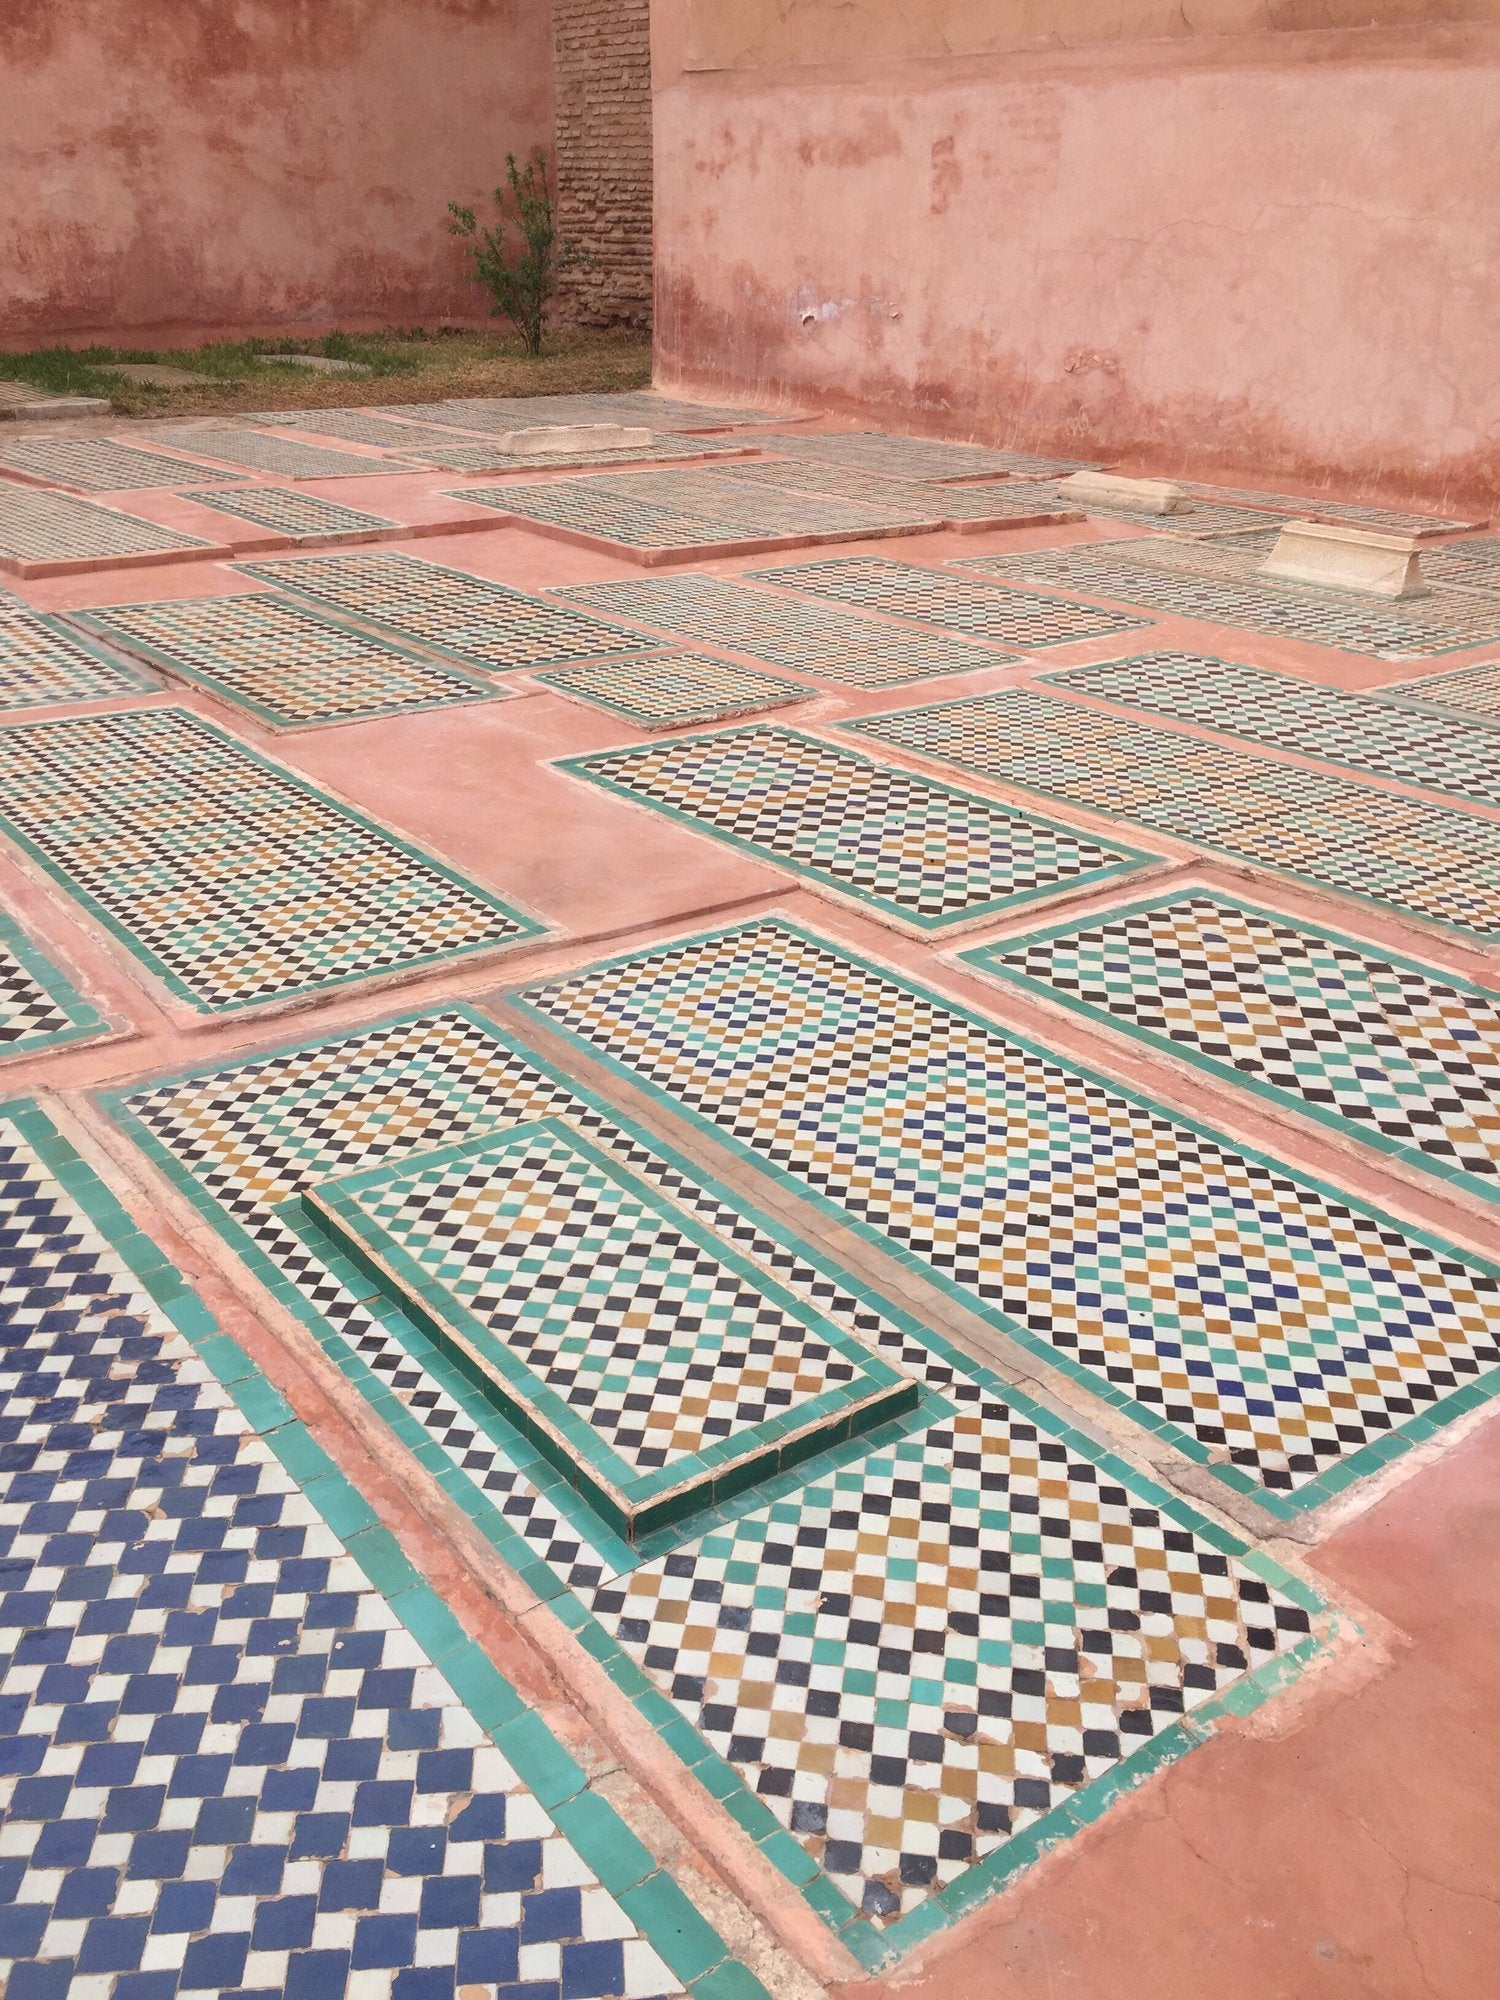 Izaskun Zabala fine costume jewelry blog about inspiration travel trip to Saadian Tombs in Marrakech Morocco